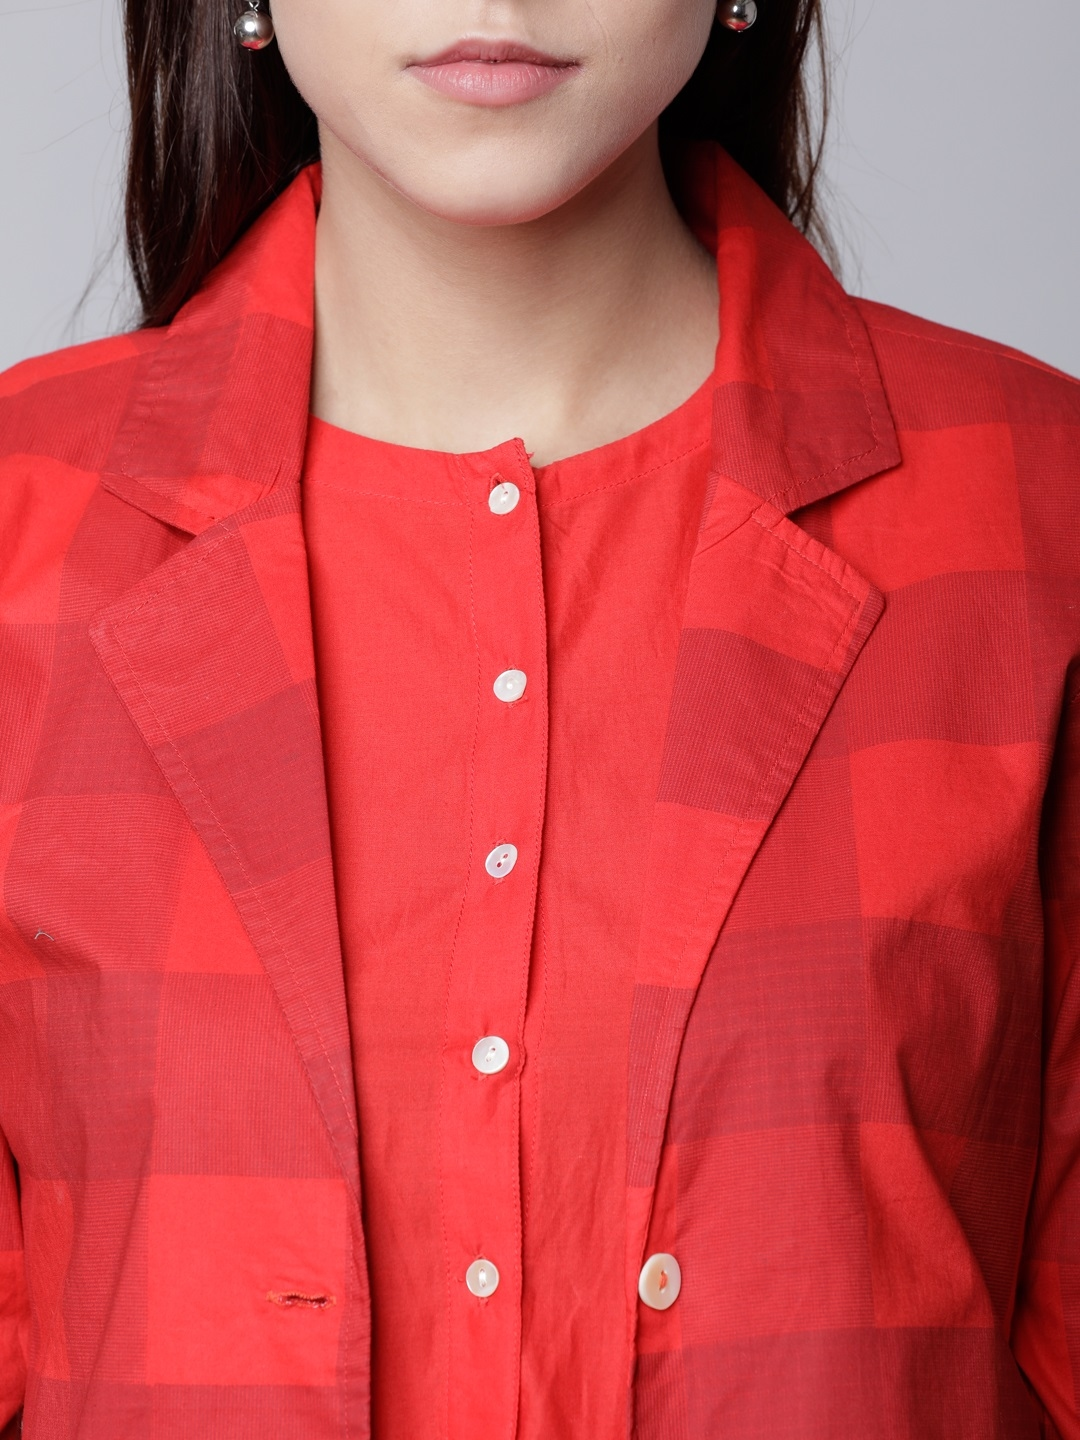 Buy Vishudh Women Red Checked Shirt Dress With Front Open Jacket ... d252d2164